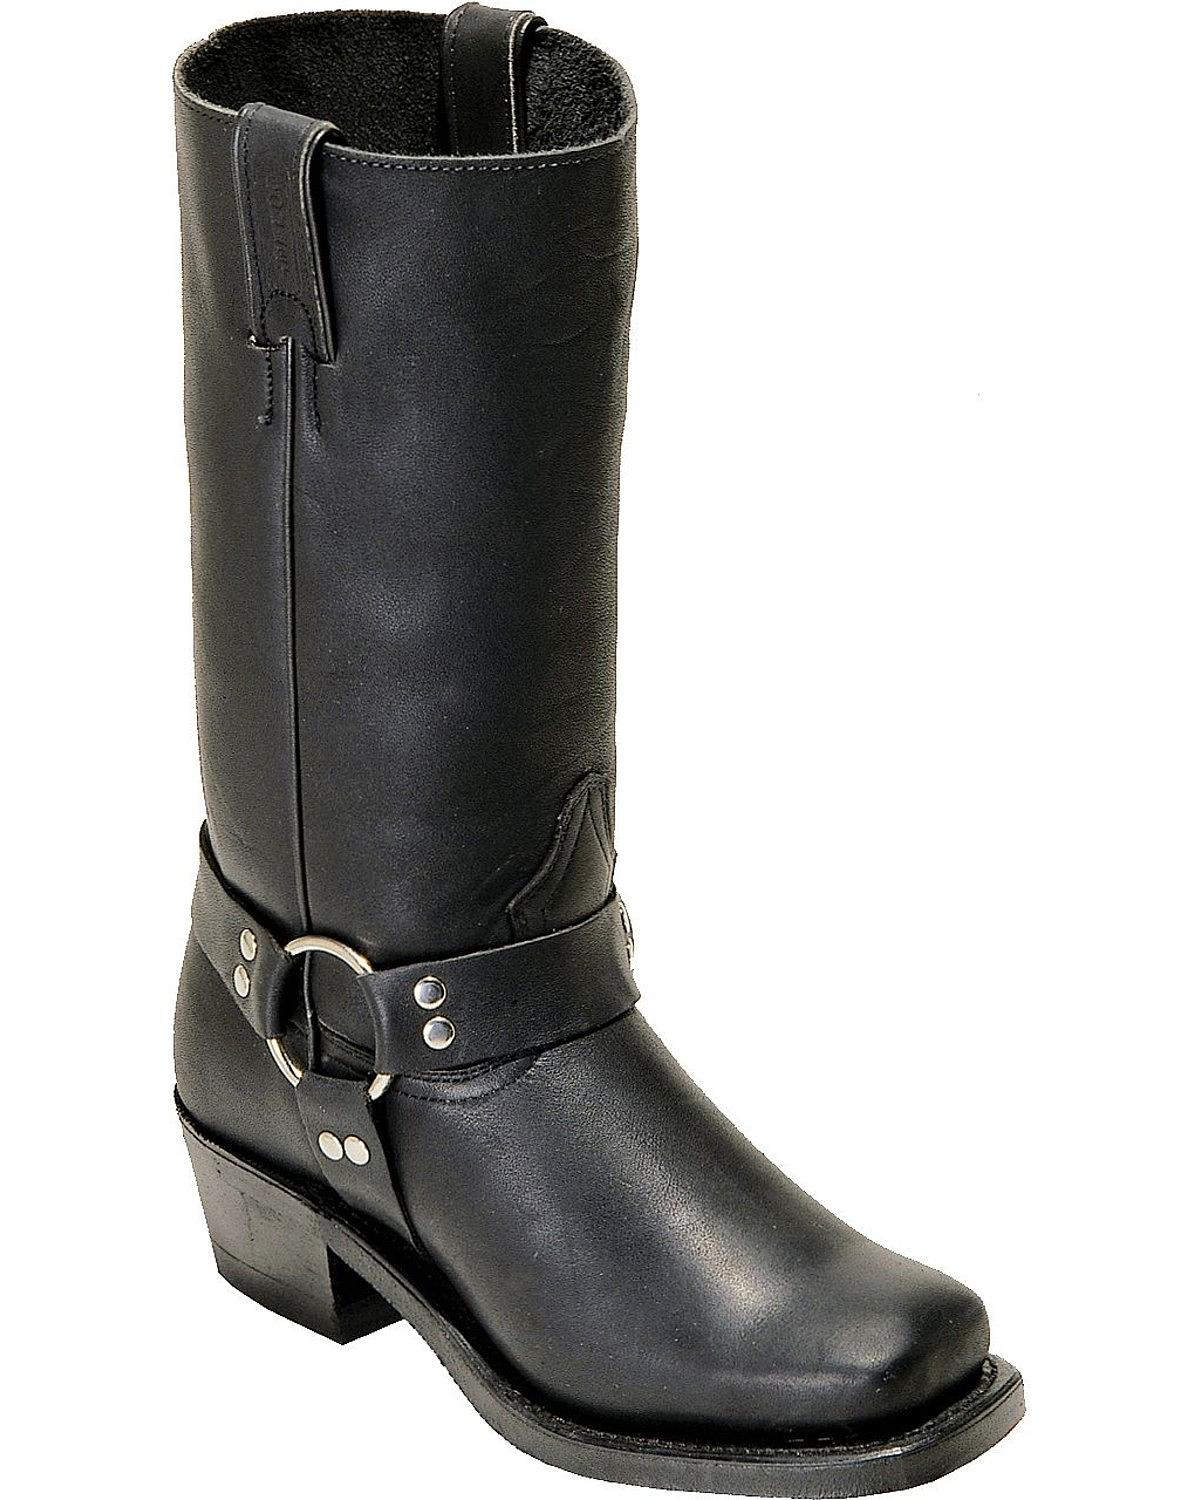 Boulet Women S Harness Motorcycle Boot Square Toe 2064